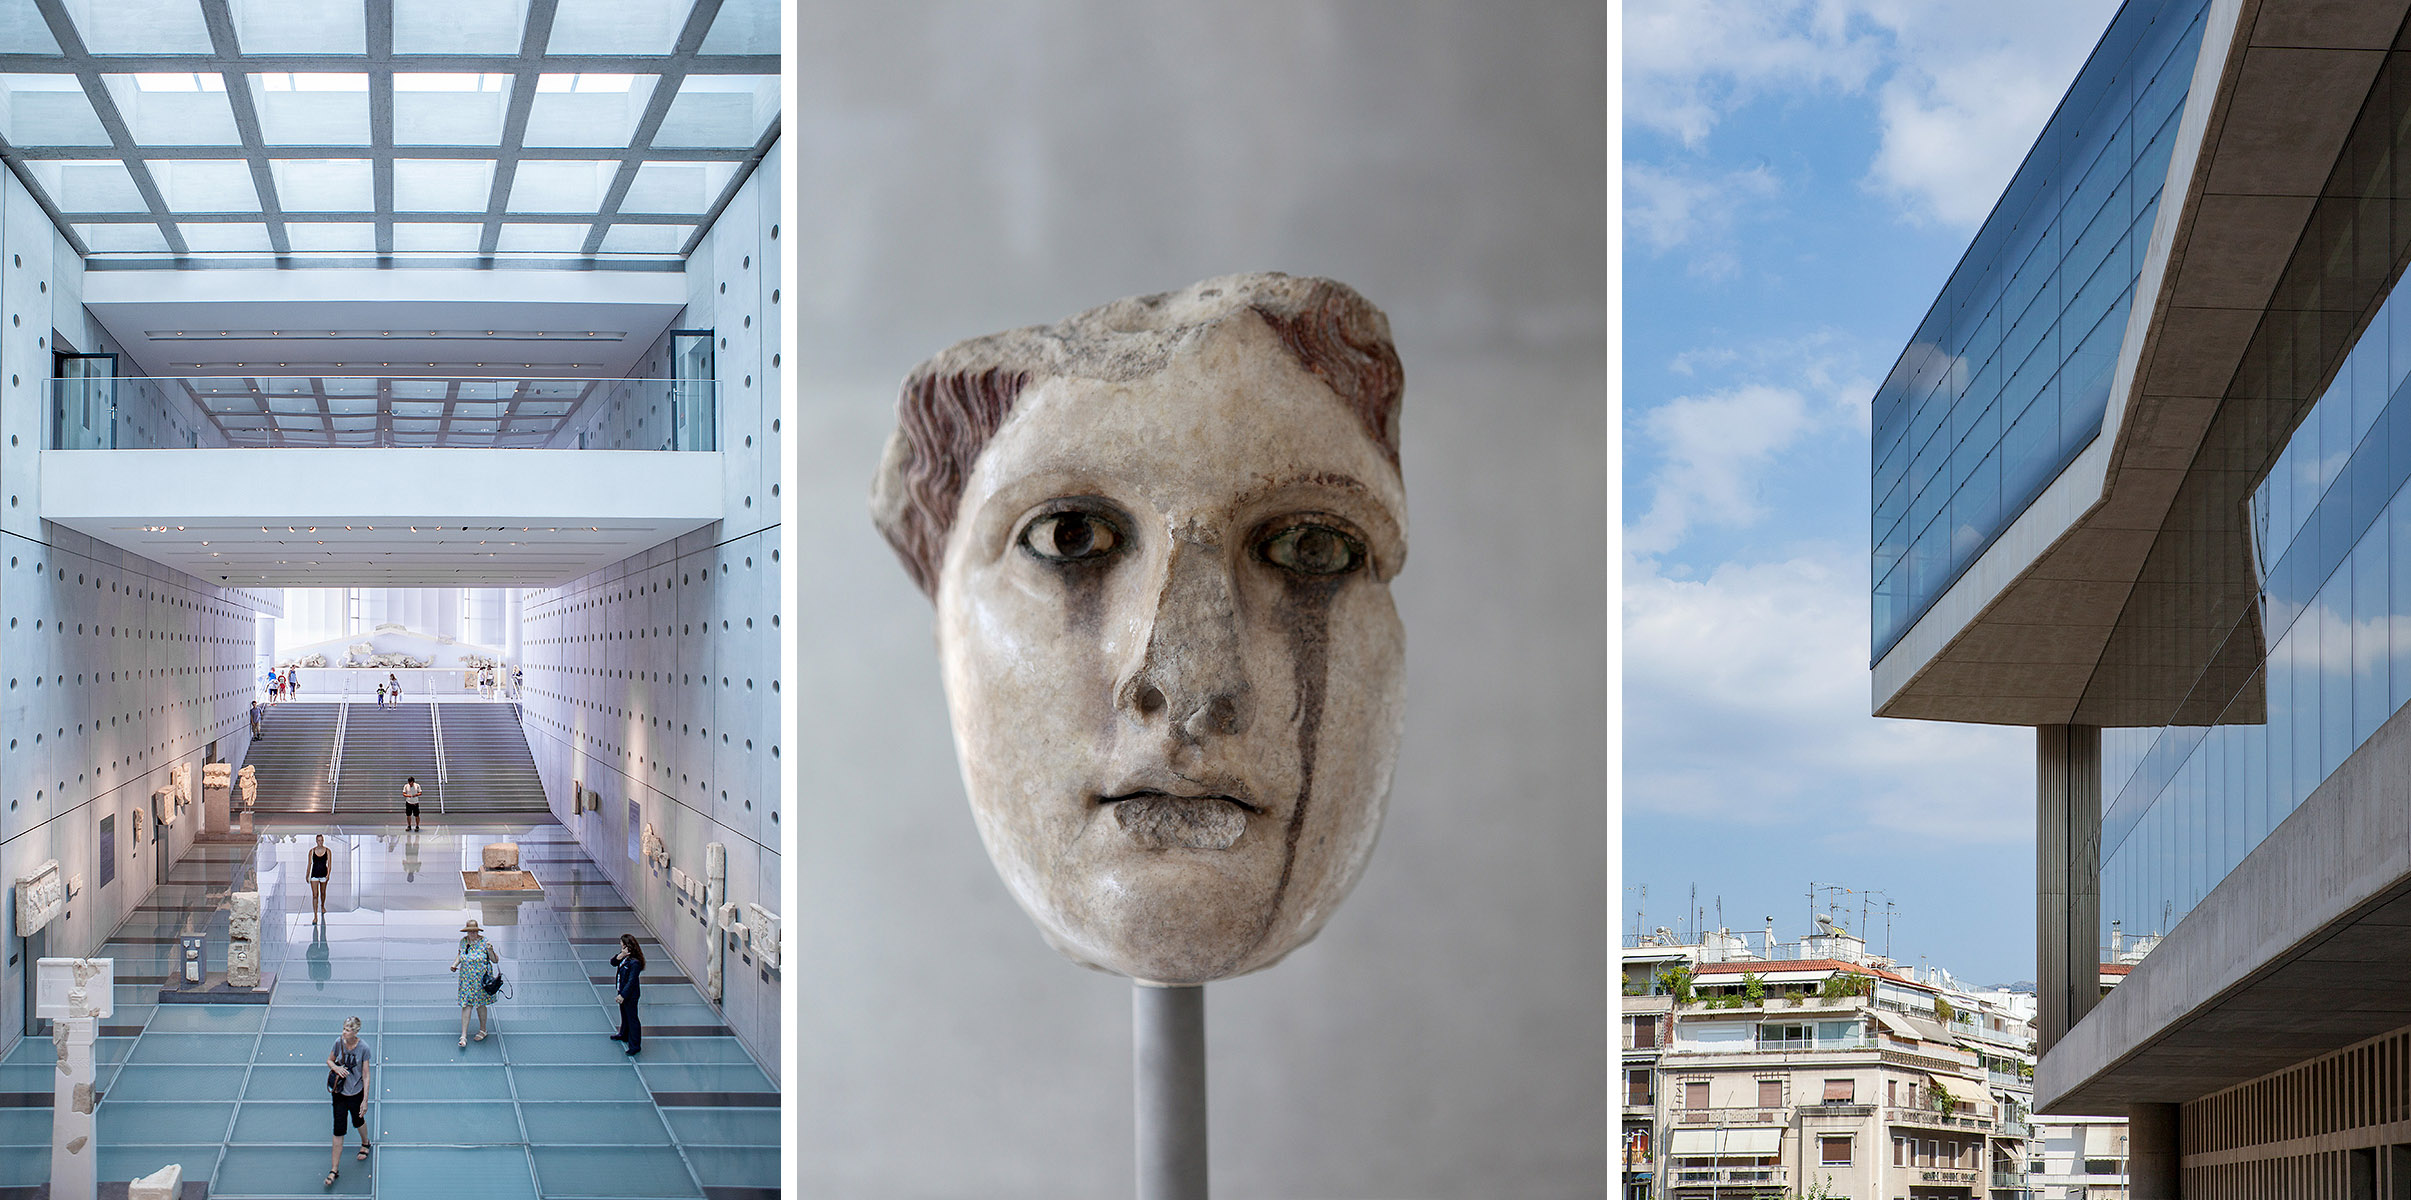 The Parthenon Gallery / Acropolis MuseumAthens, Greece